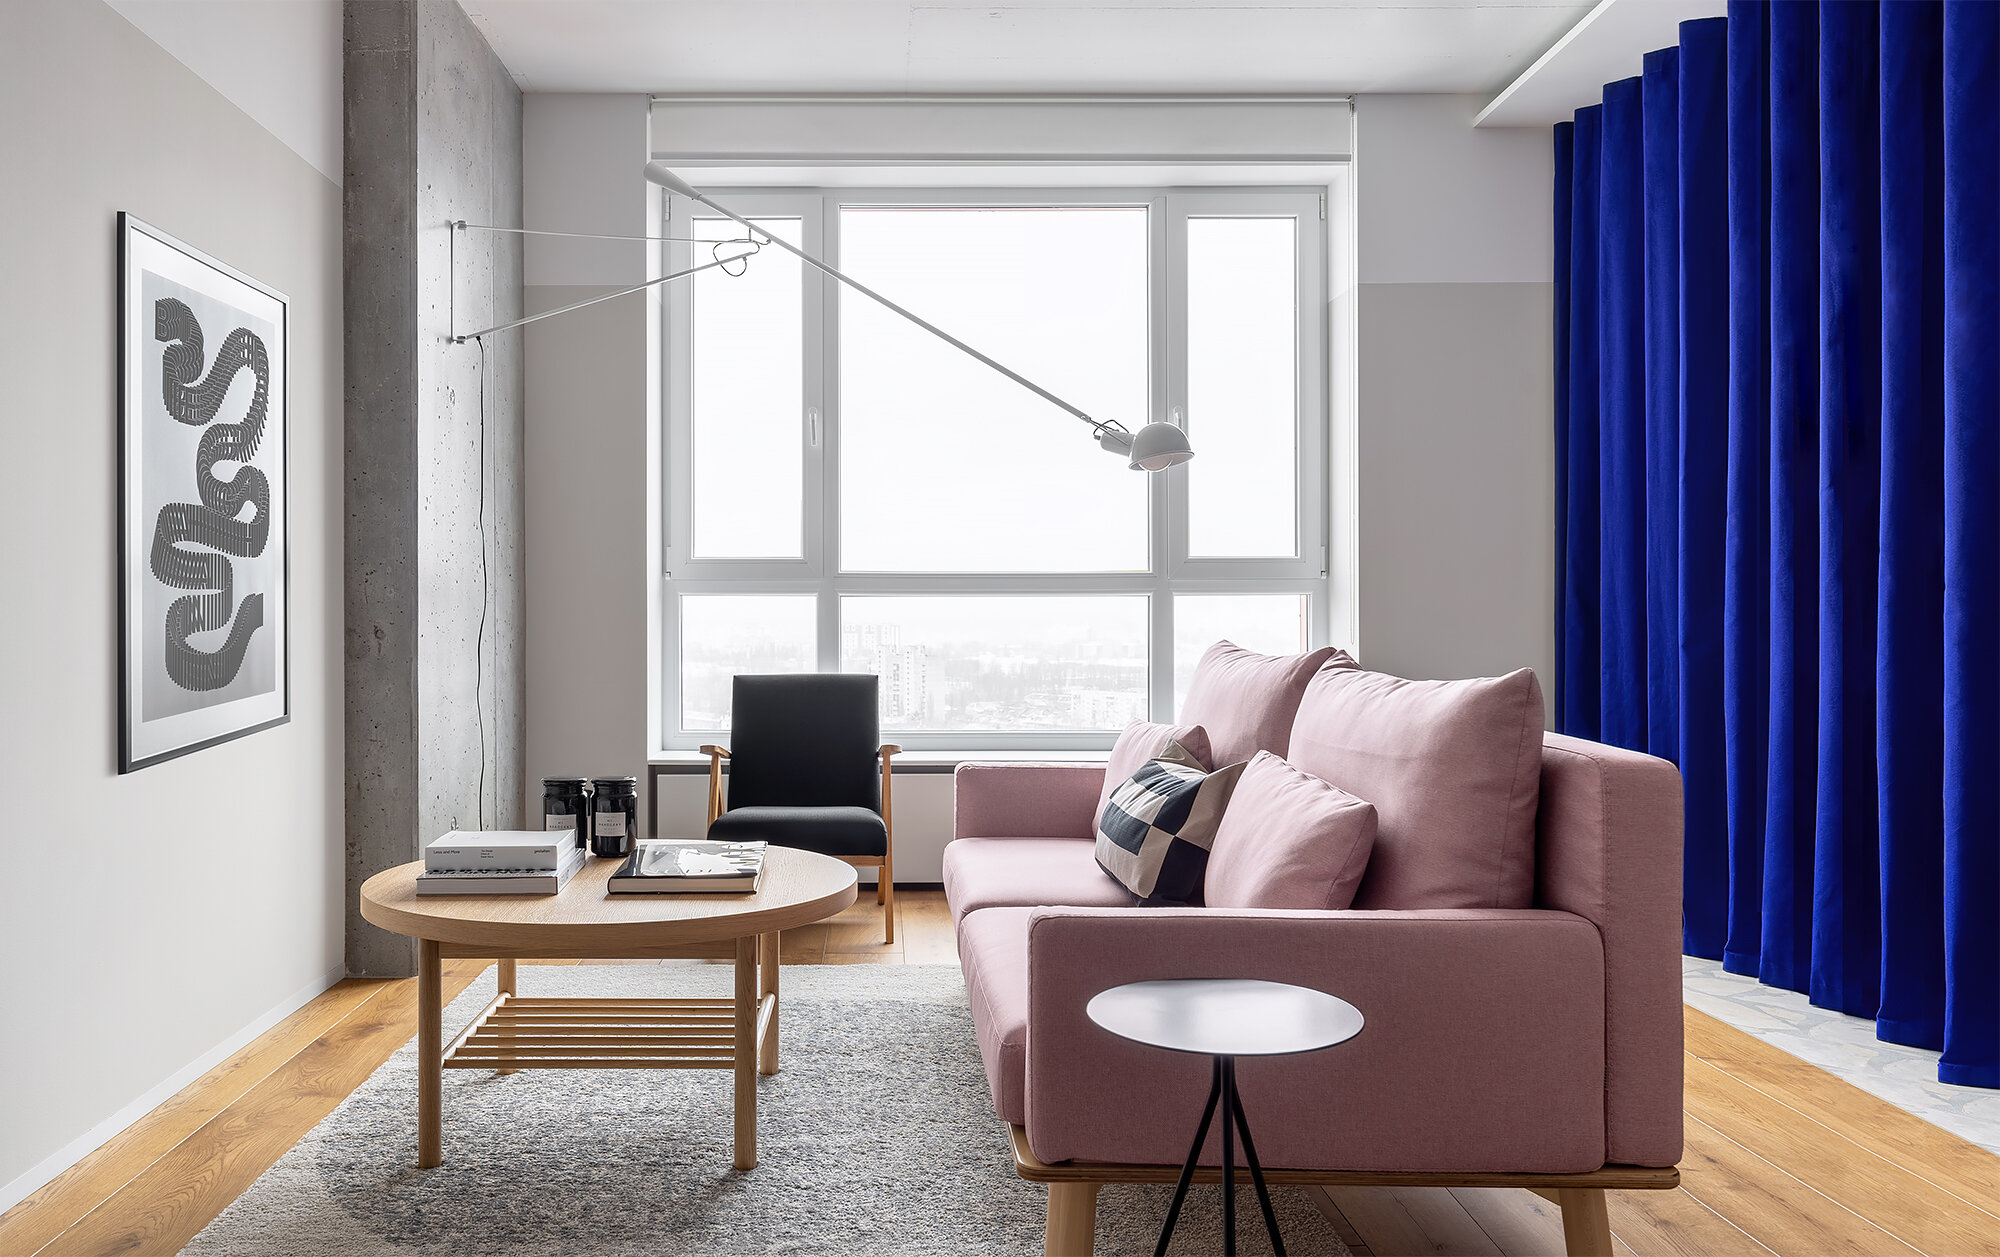 4_ater.architects_EGR Apartment_Inspirationist